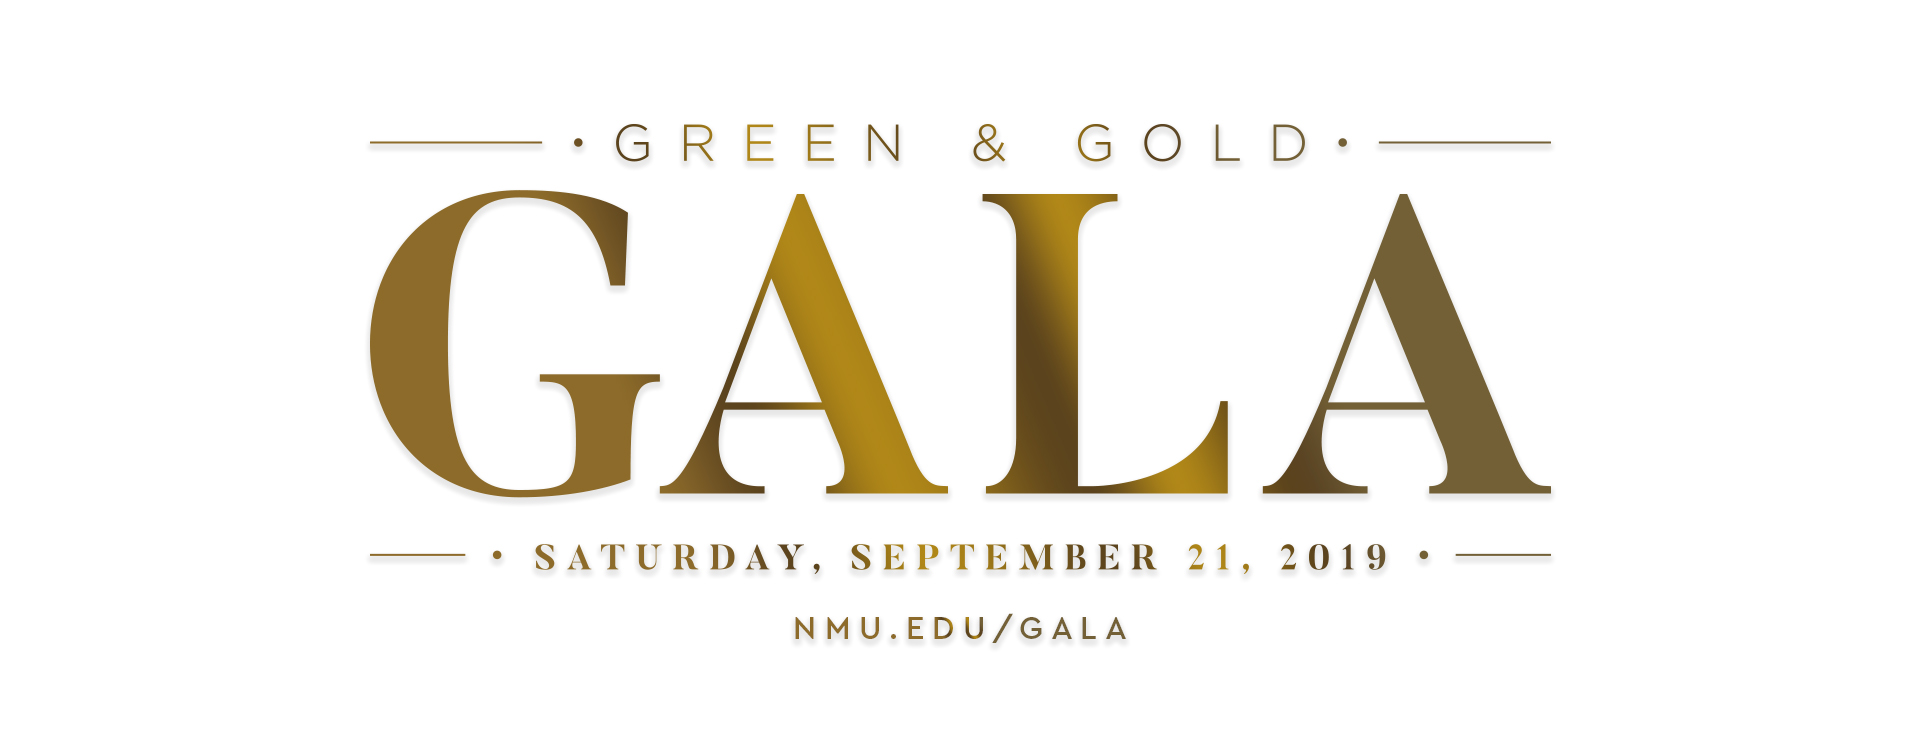 Green & Gold Gala - Saturday, September 21, 2019 - nmu.edu/gala